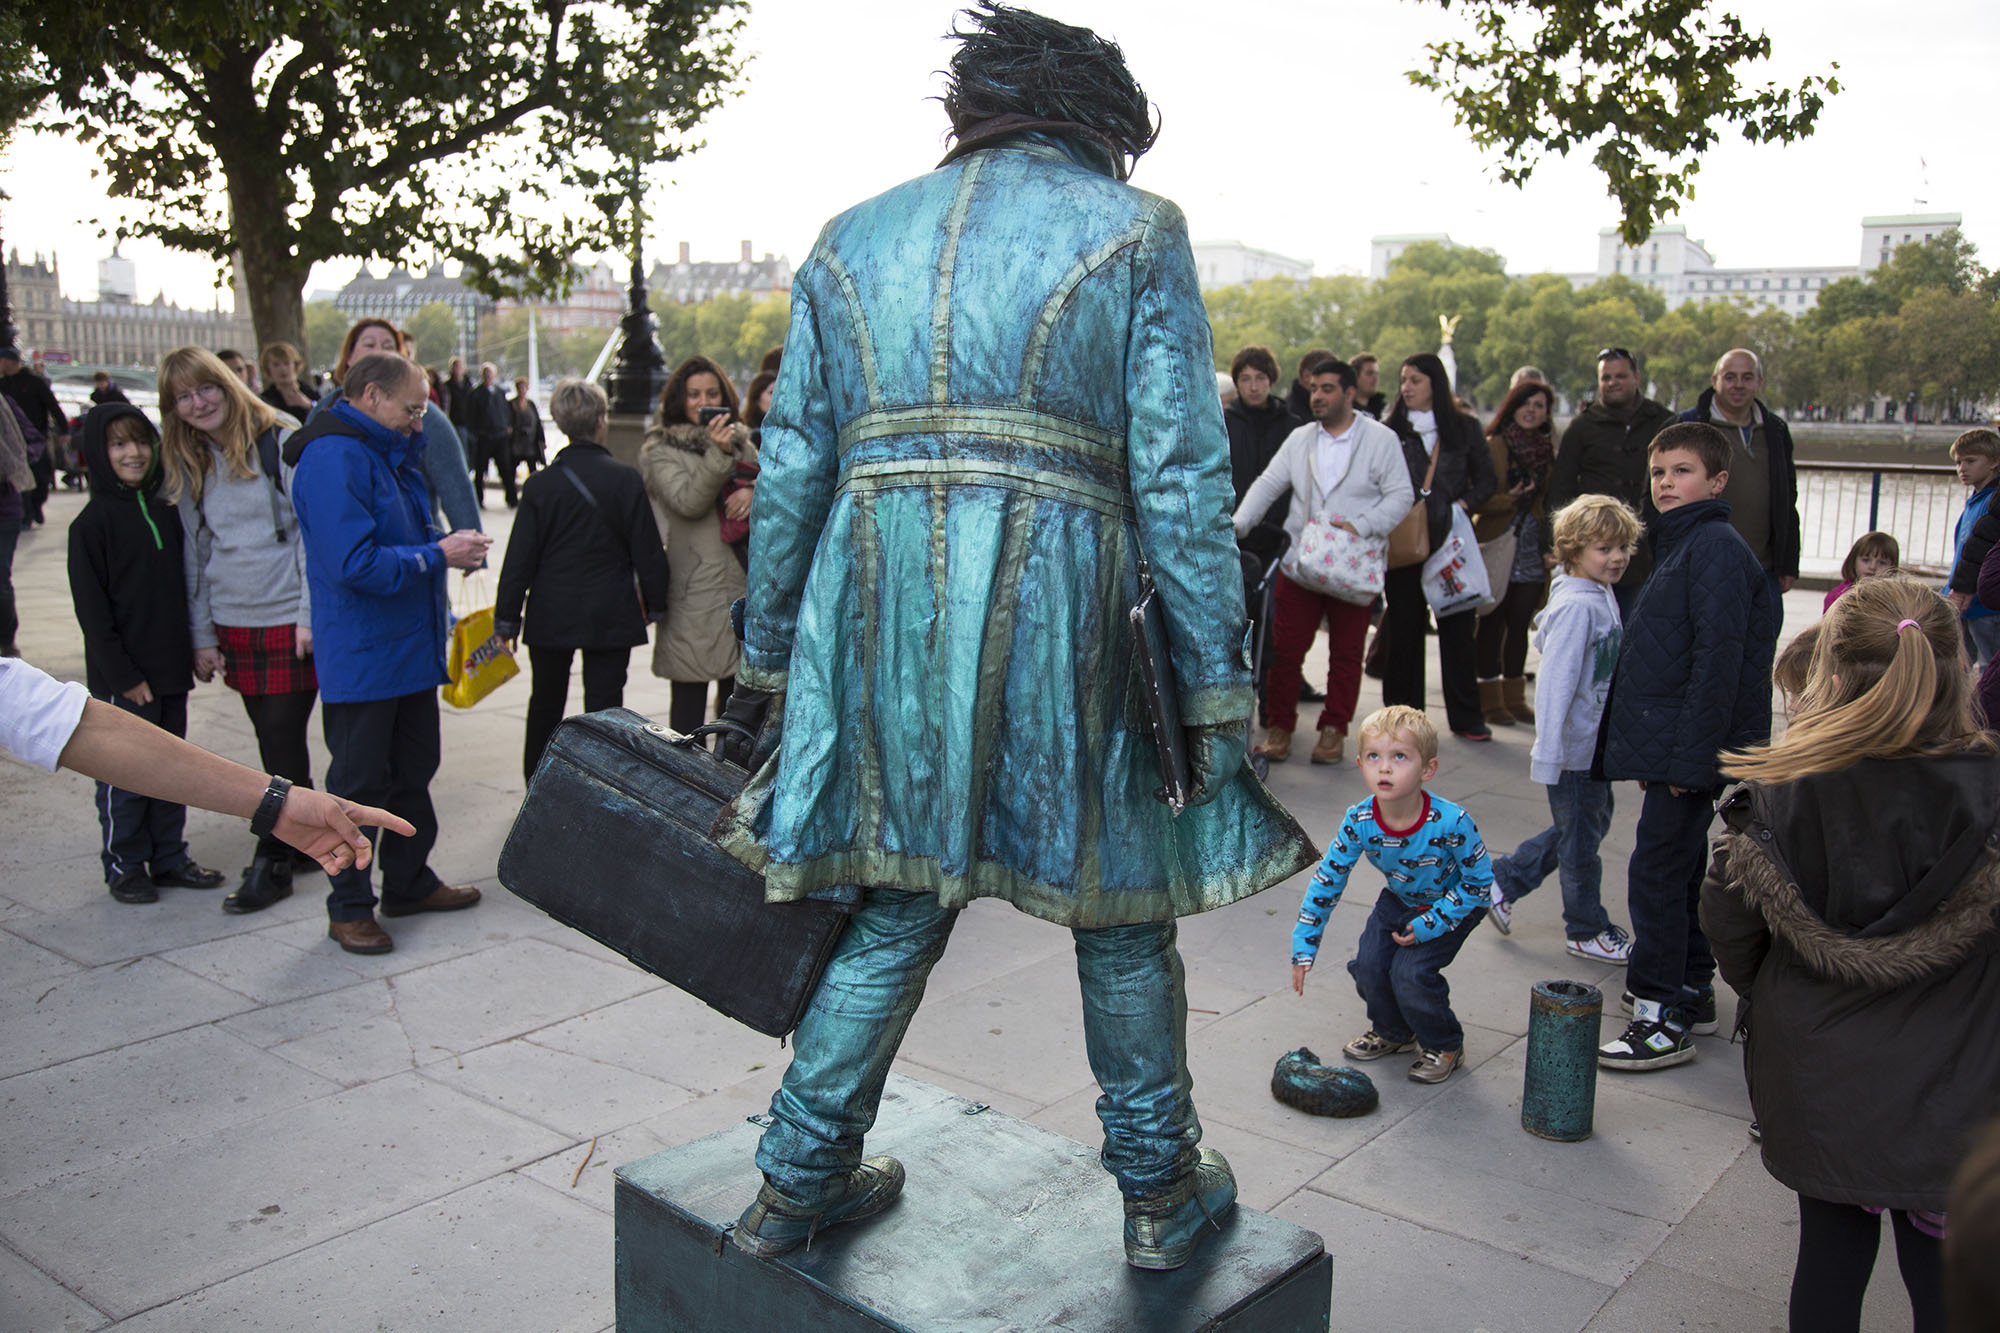 Children interact with a living statue artist who does not blink for hours at a time.